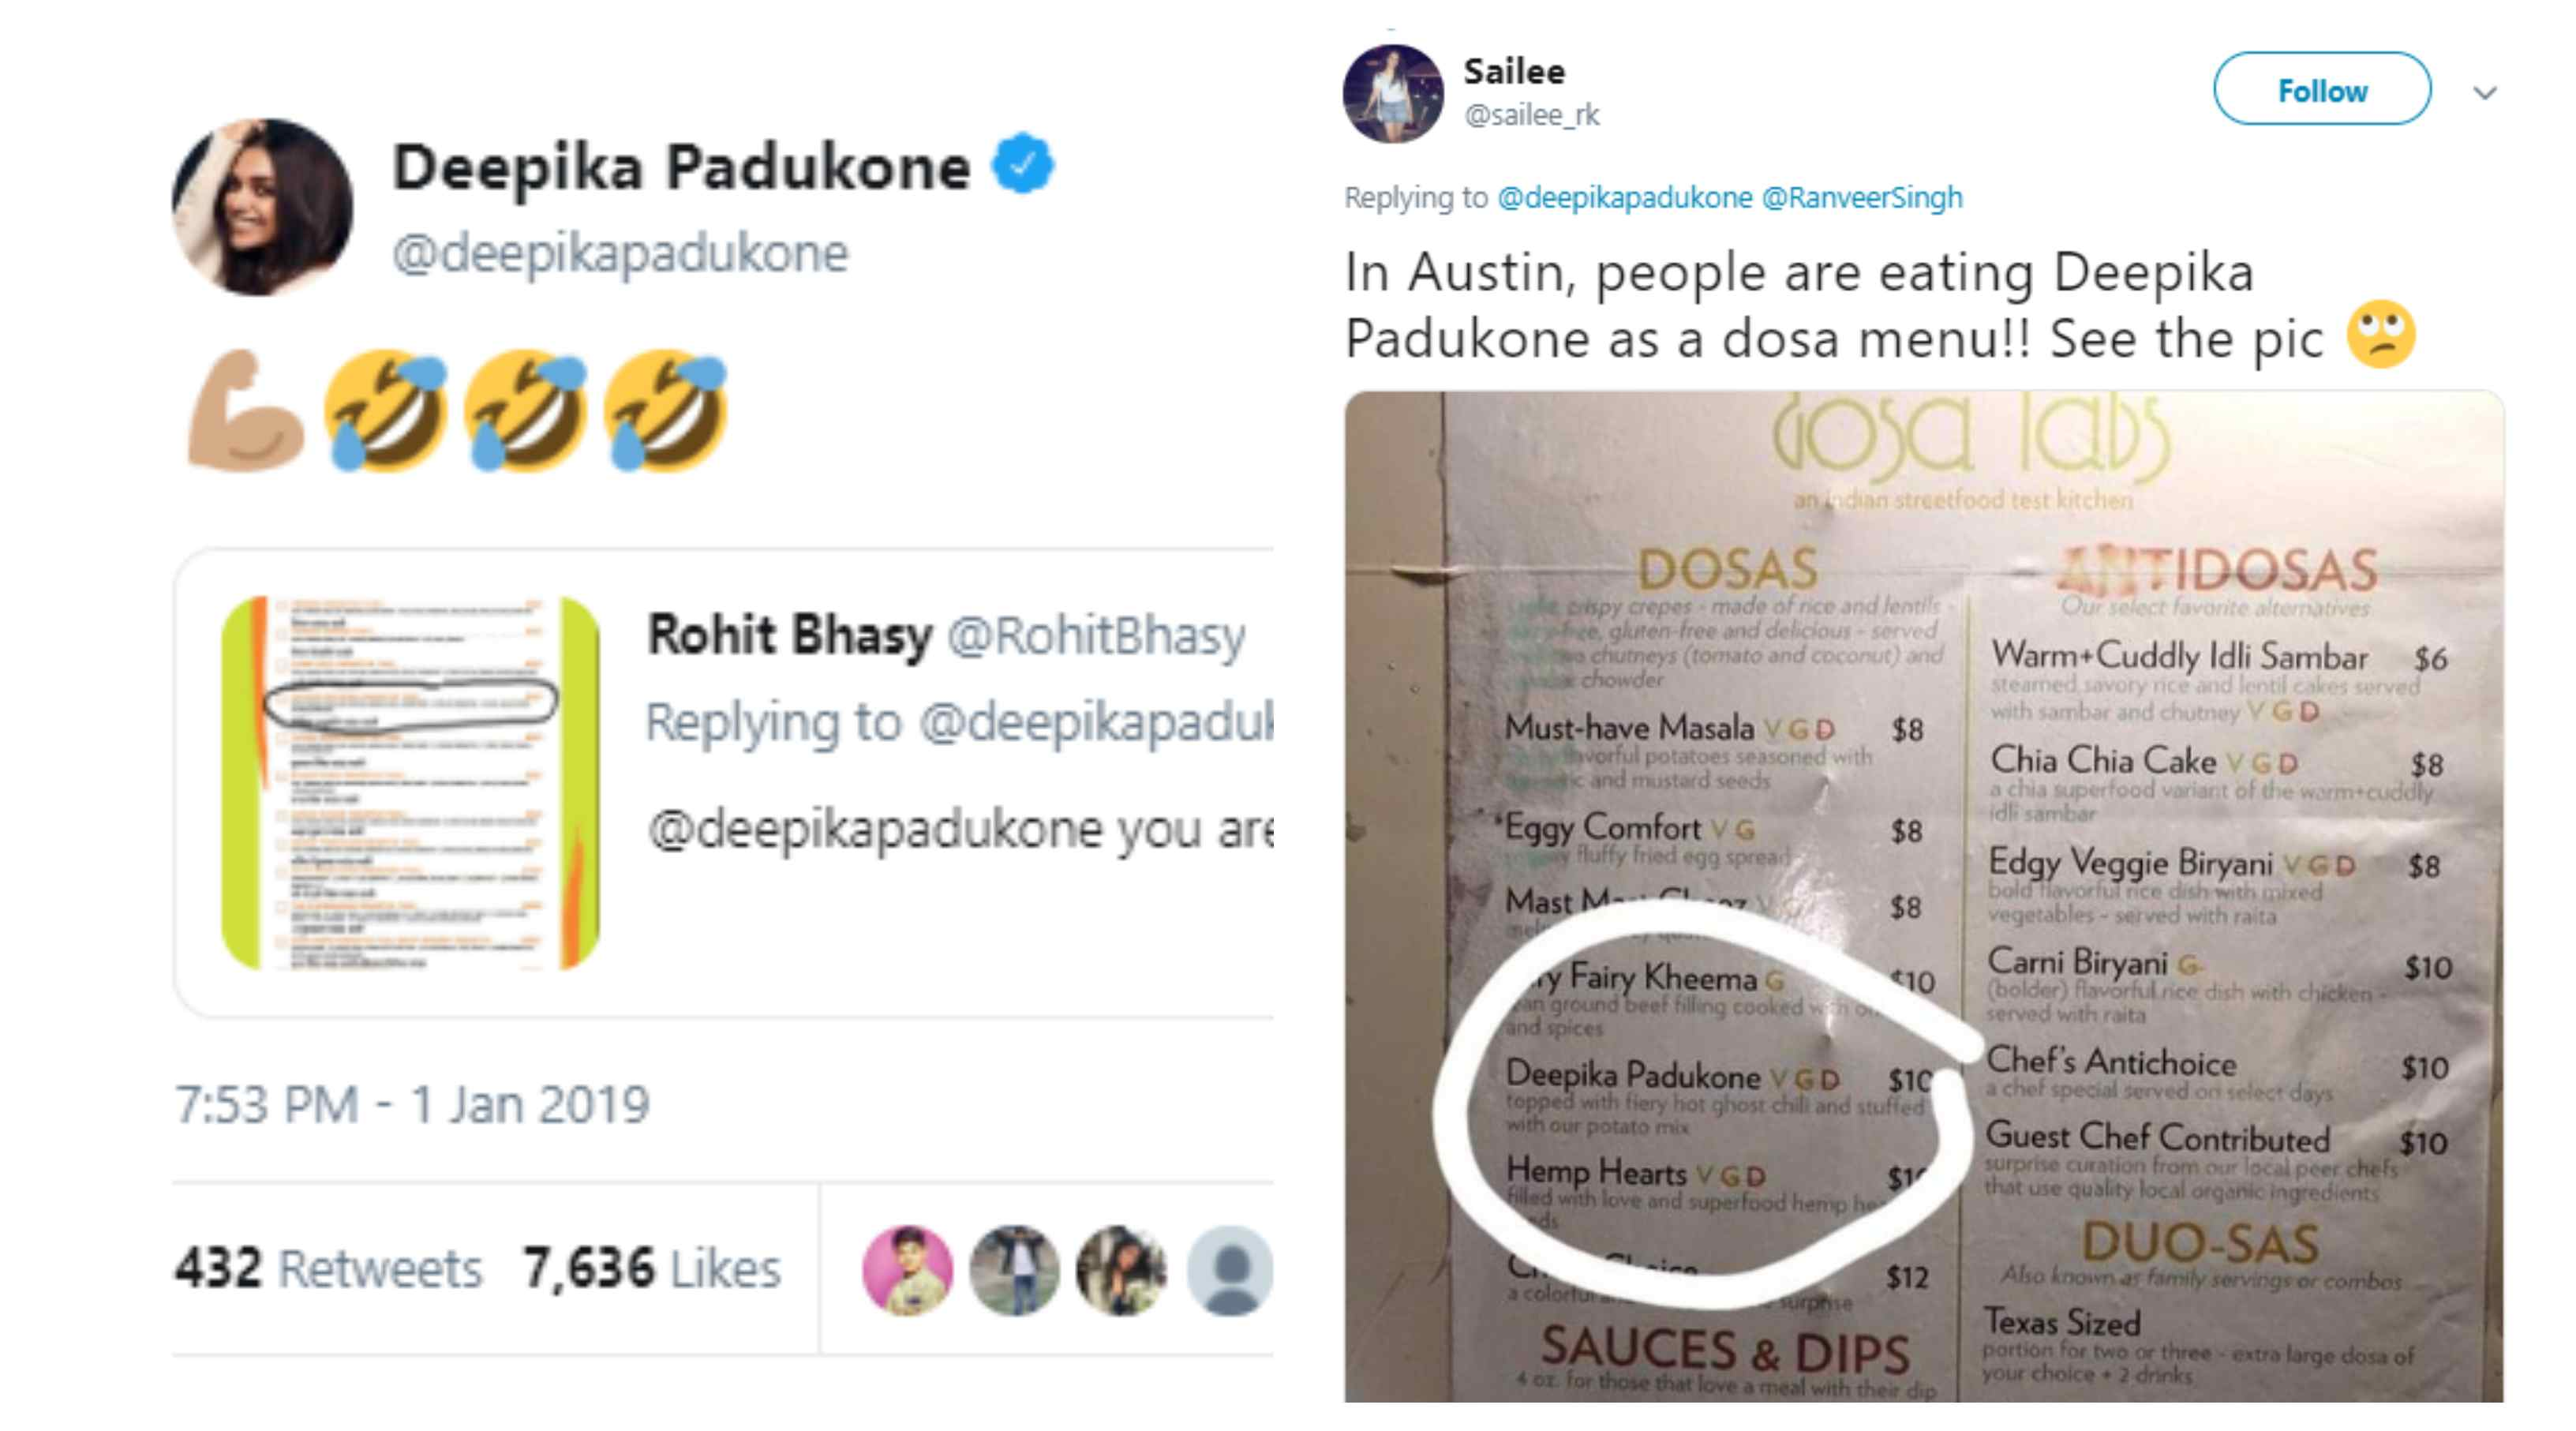 Olalla !! Deepika Padukone now popular in food menu also, from dosa to paratha